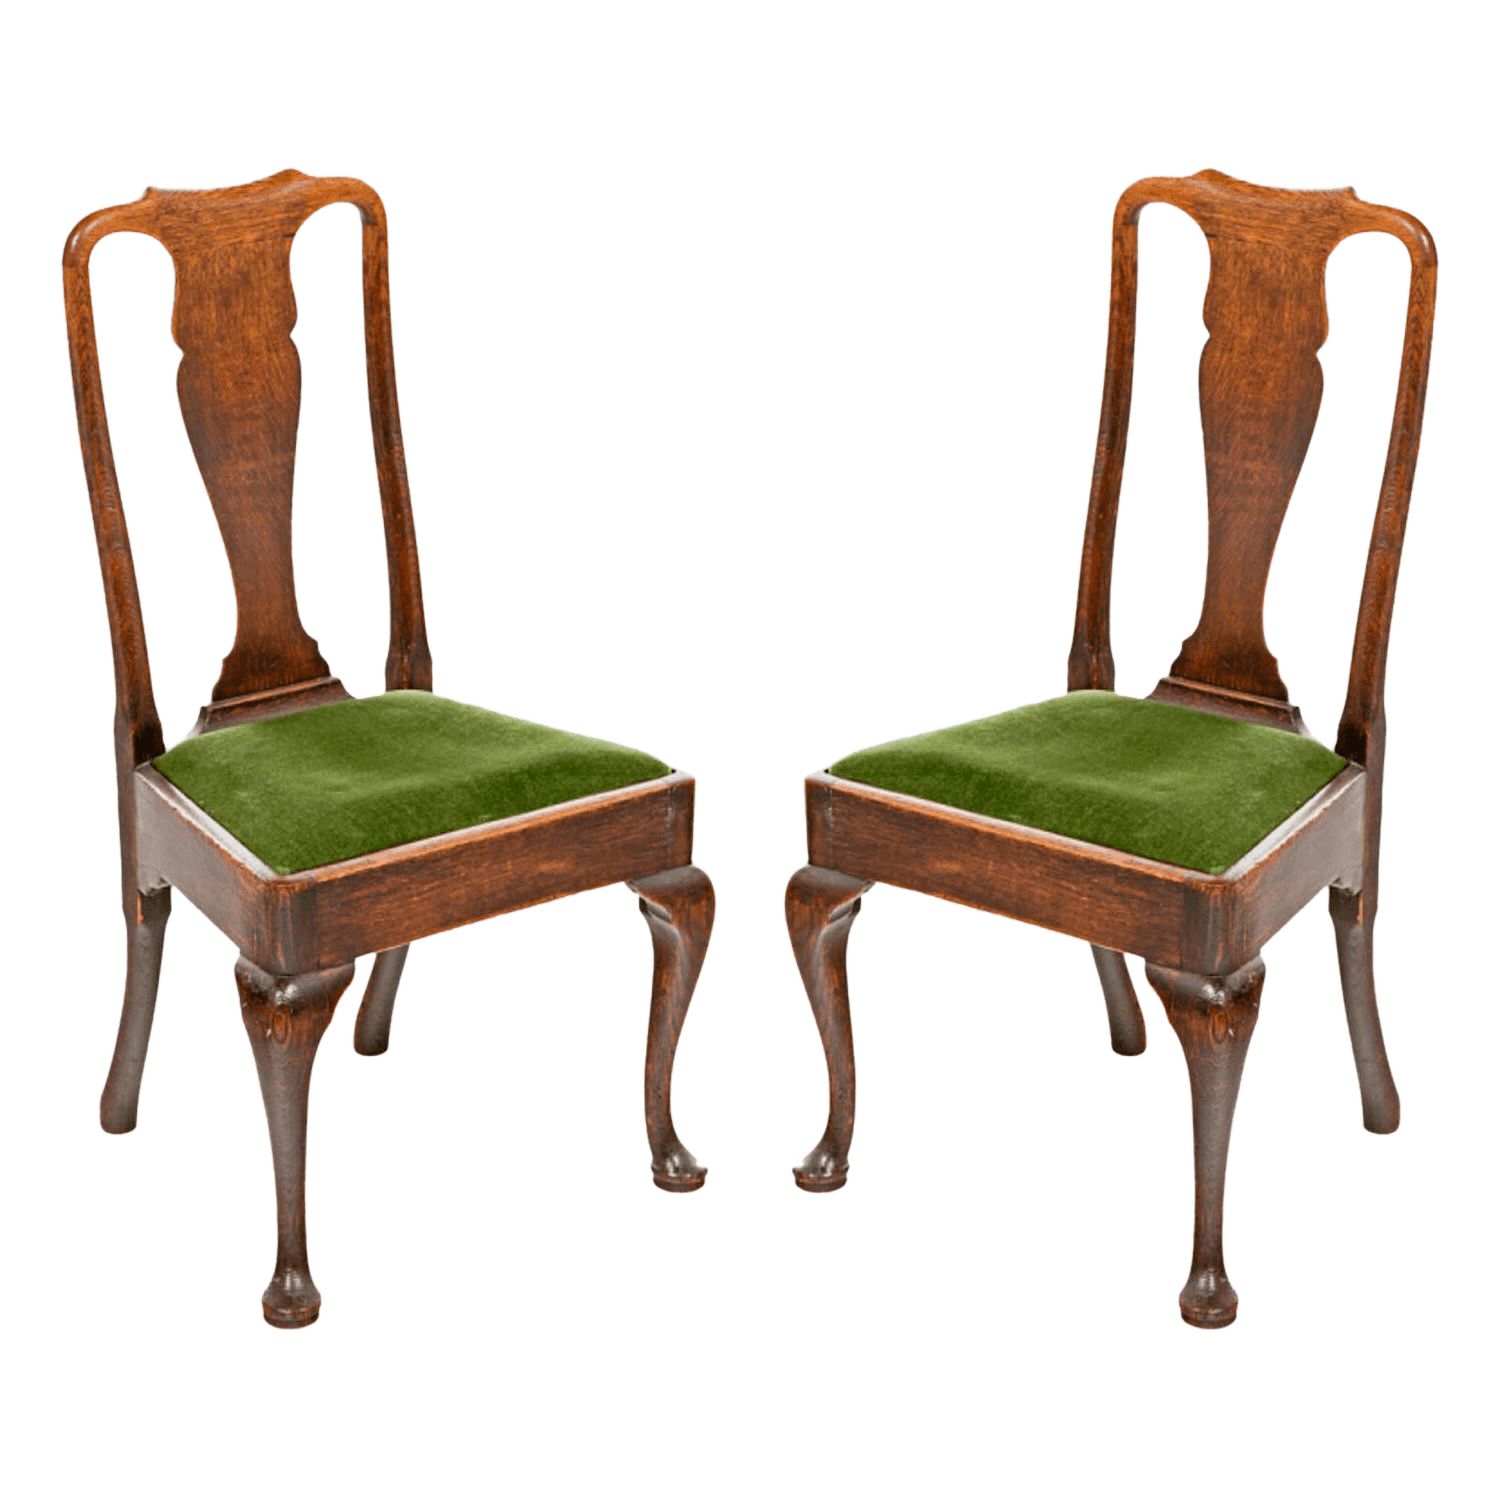 queen ann chairs hay about a chair aac22 replica vintage used anne accent chairish 18th century oak pair for sale